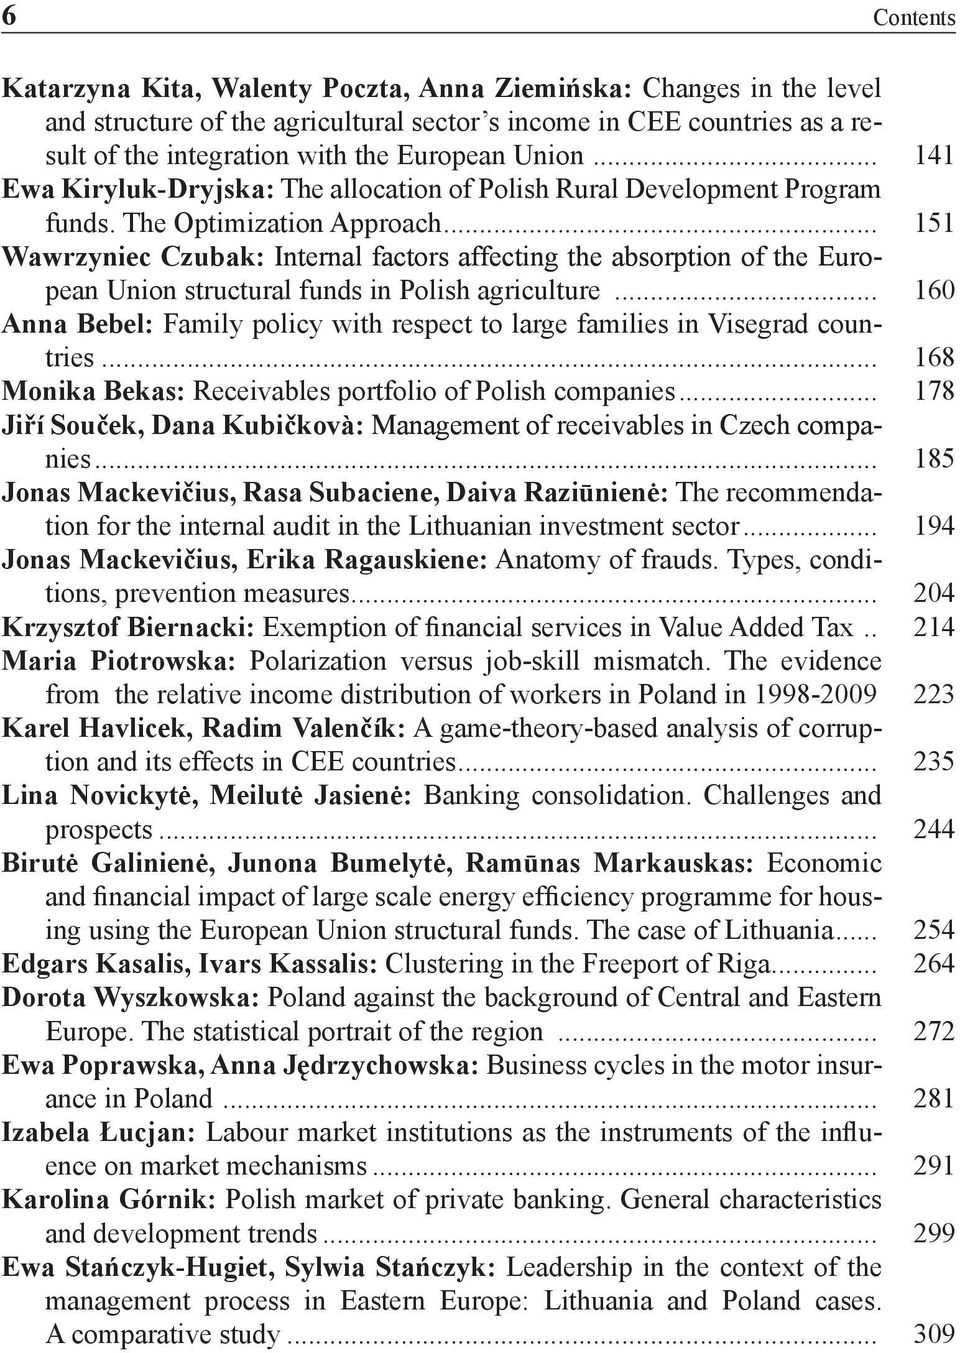 .. 151 Wawrzyniec Czubak: Internal factors affecting the absorption of the European Union structural funds in Polish agriculture.